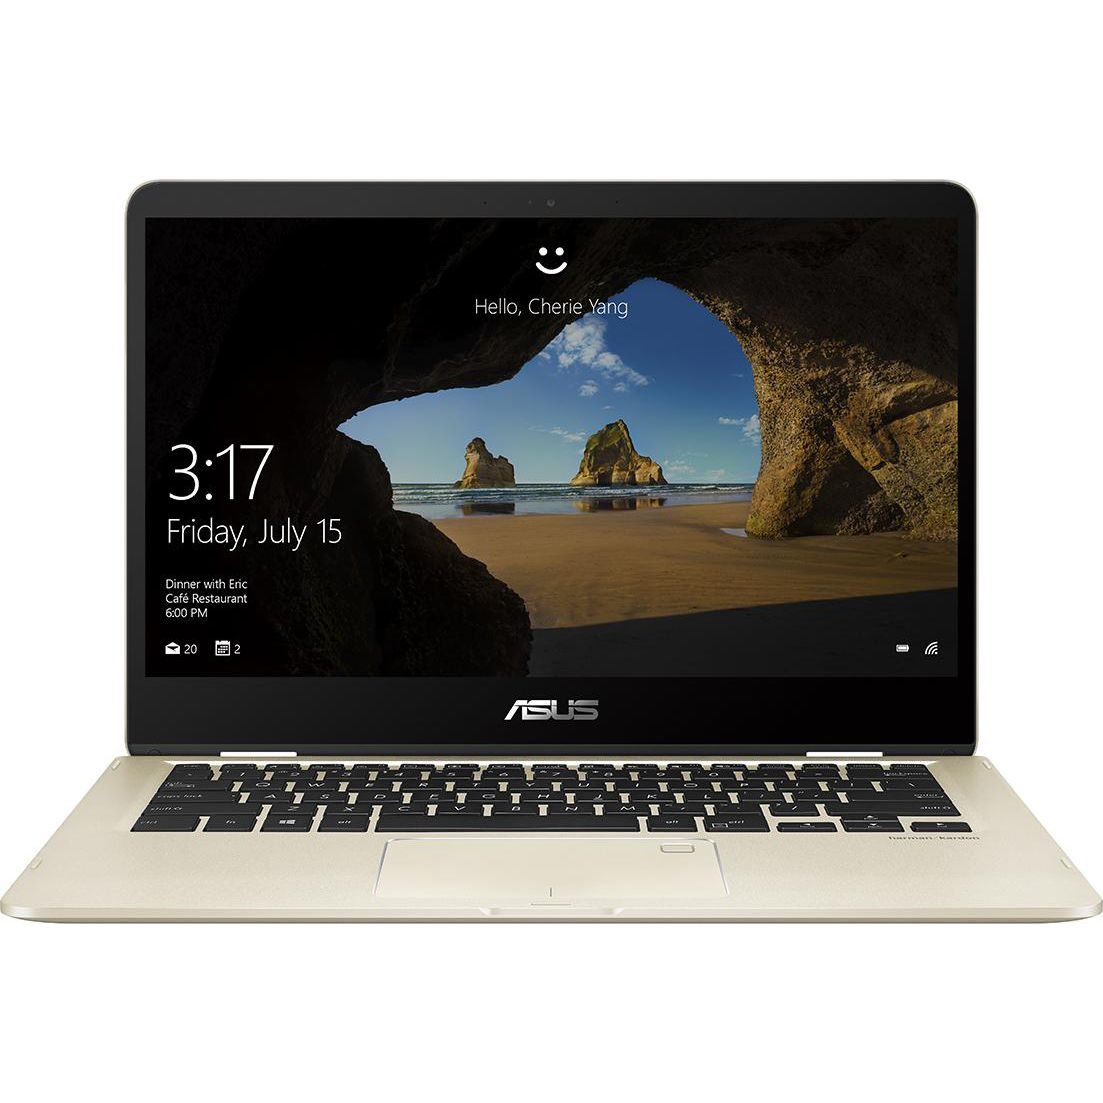 Ultrabook Asus ZenBook UX461UA 14 Full HD Touch Intel Core i5-8250U RAM 8GB SSD 256GB Windows 10 Home Auriu